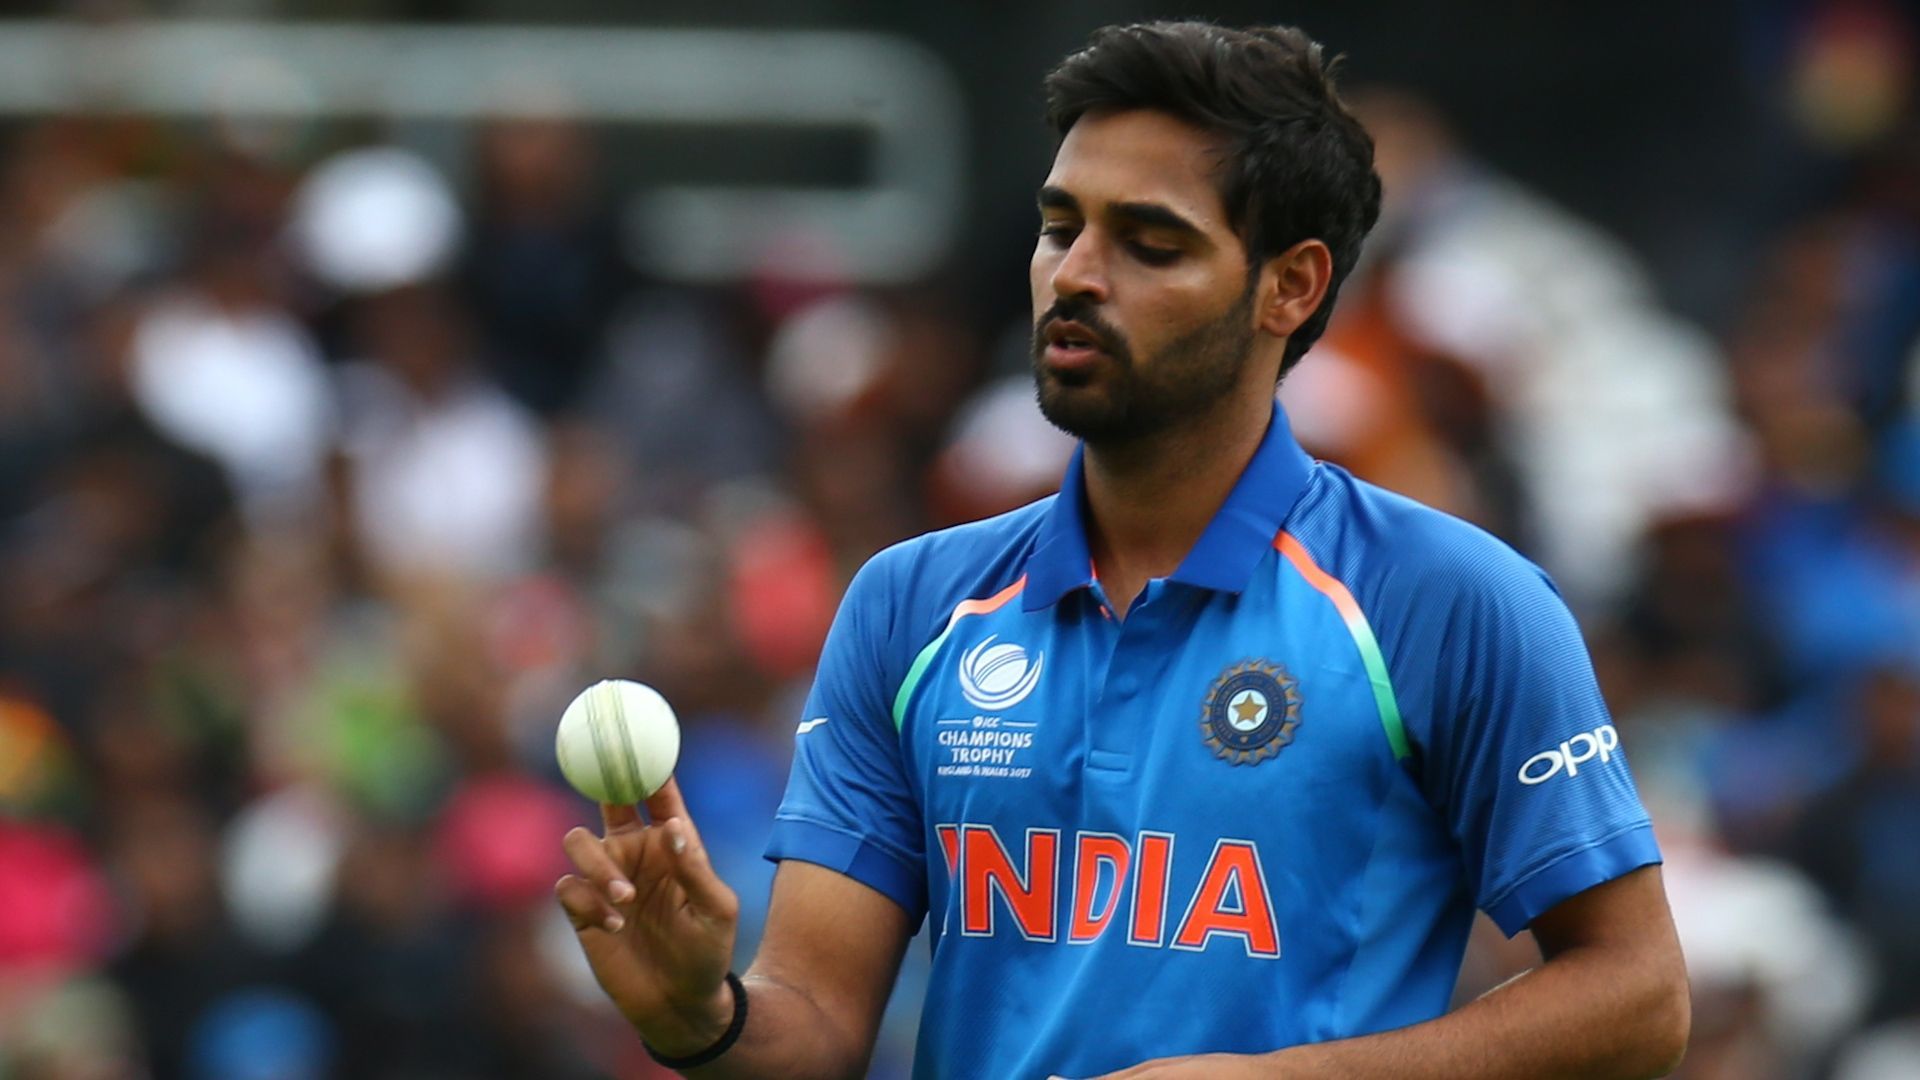 Bhuveshwar Kumar will be the key to India's WC 2019 campaign. (Getty)